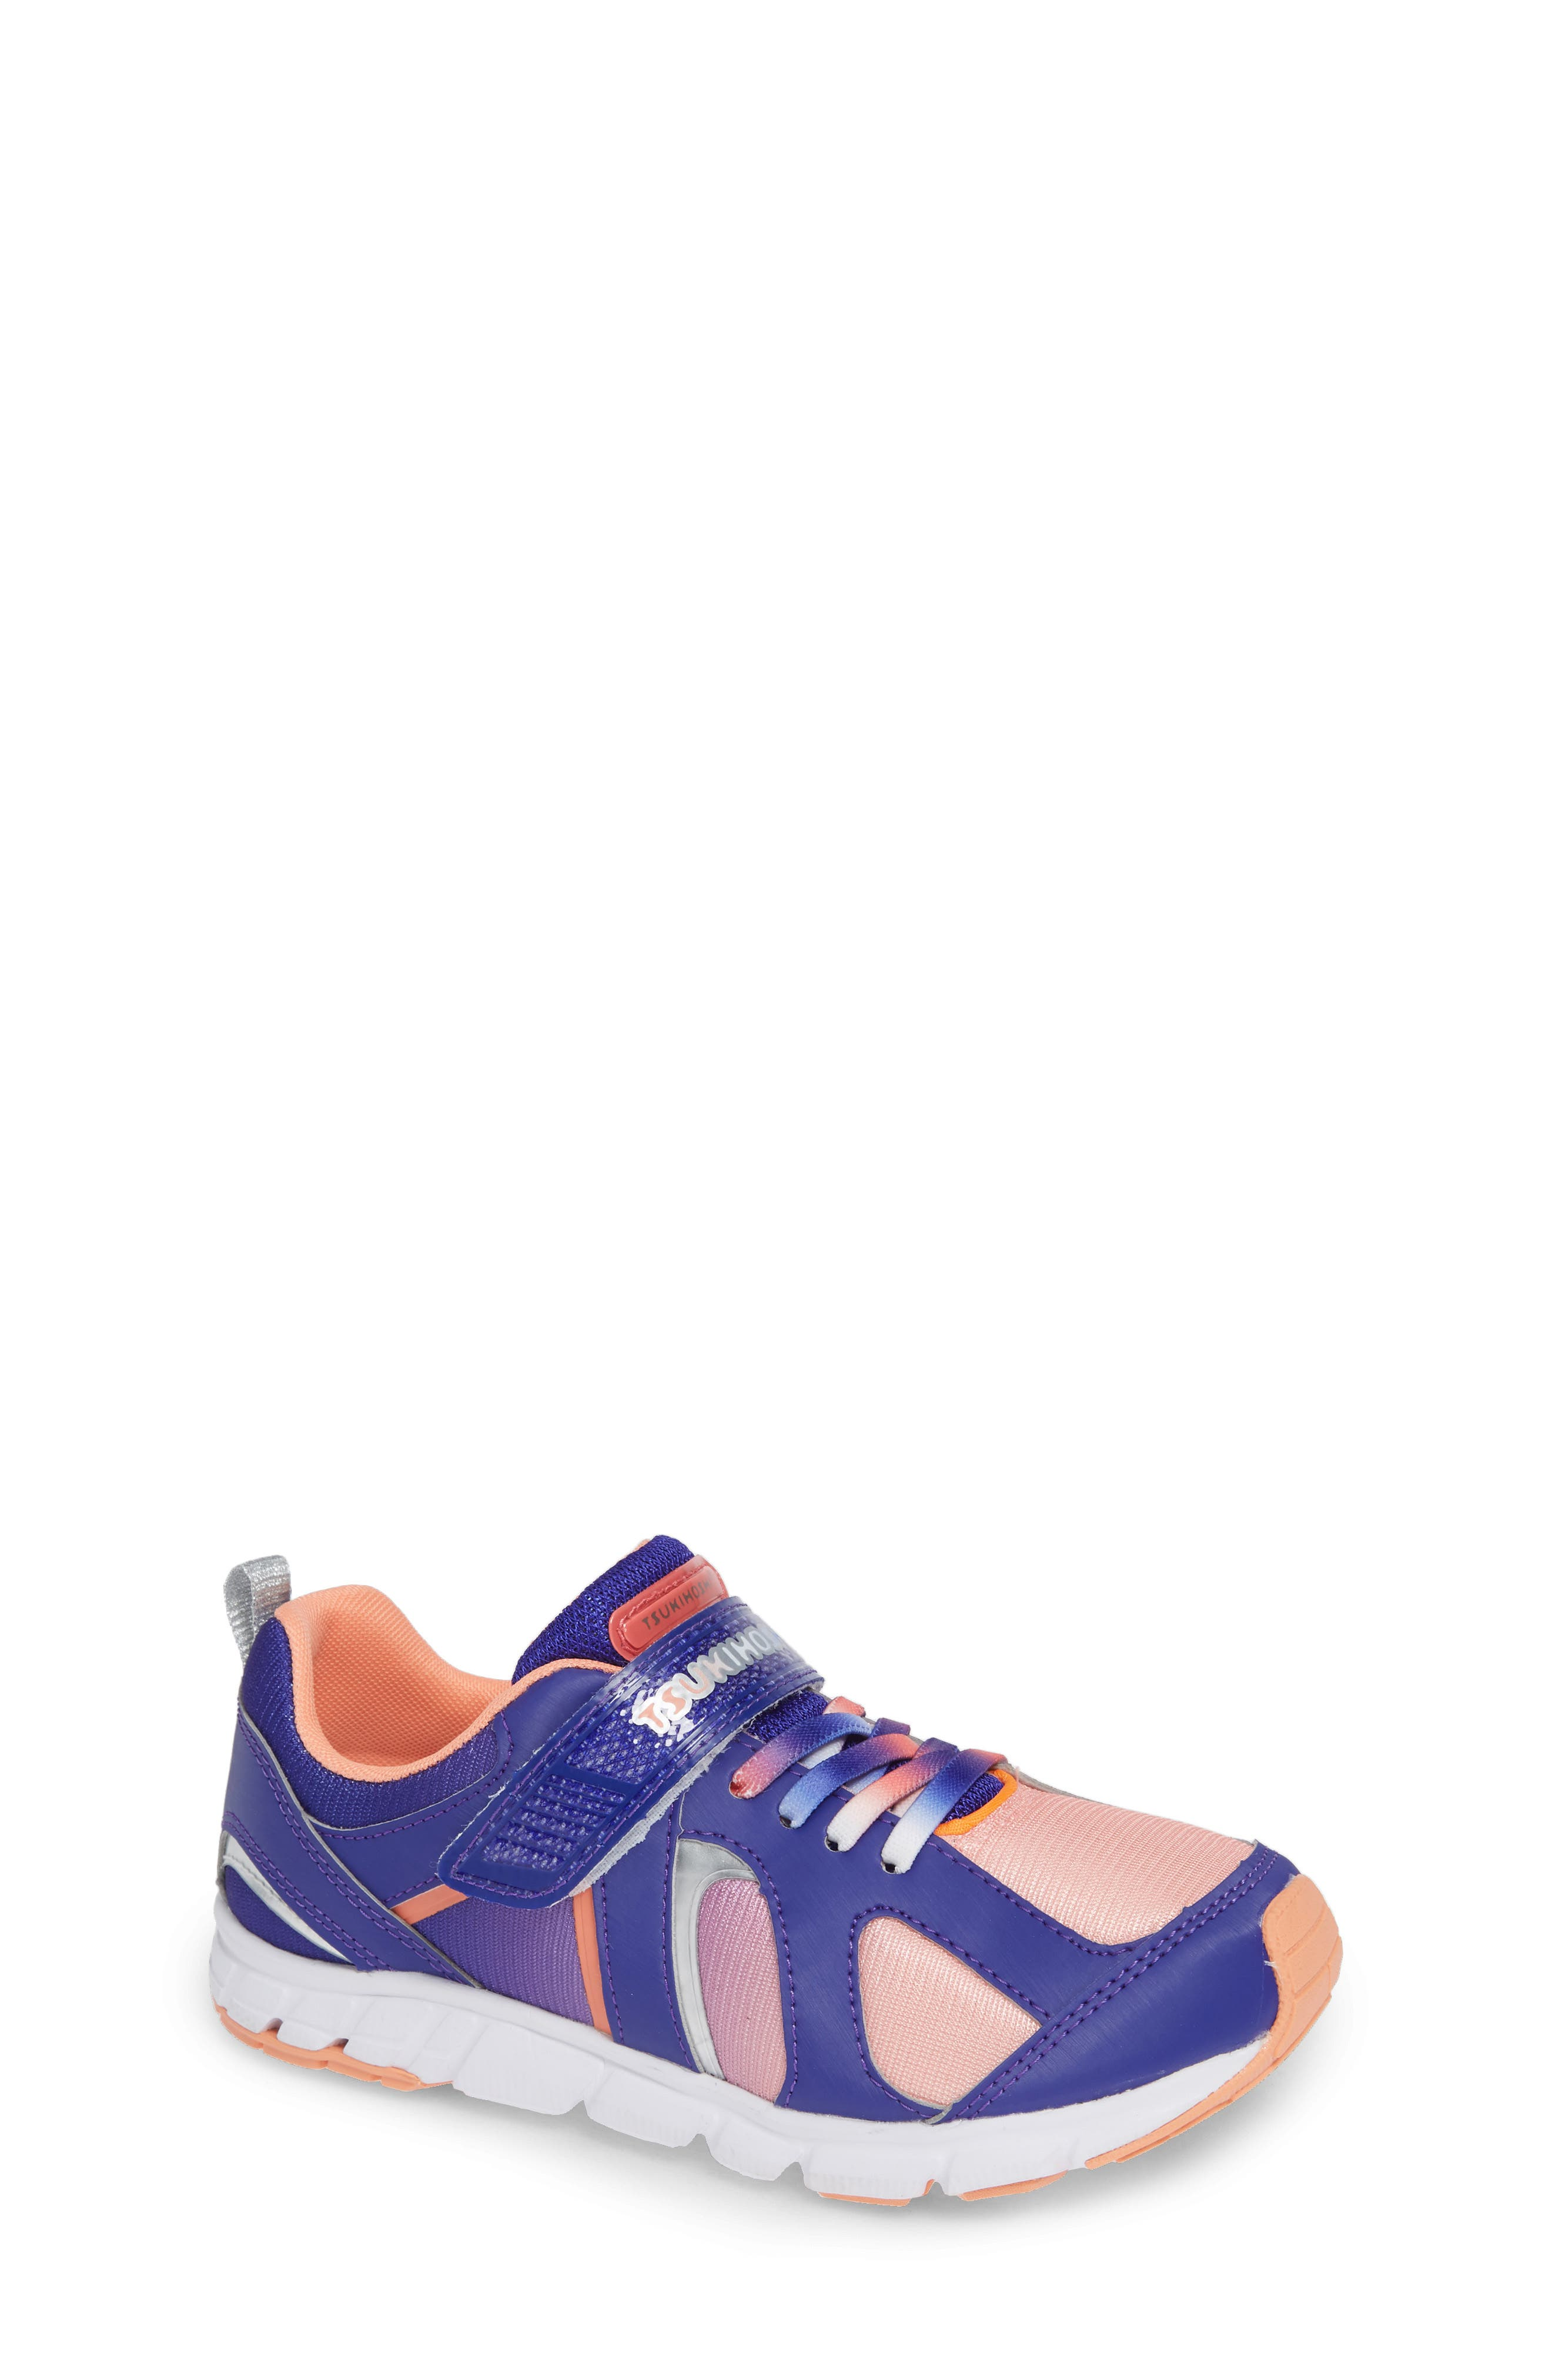 TSUKIHOSHI Rainbow Washable Sneaker, Main, color, VIOLET/ PEACH